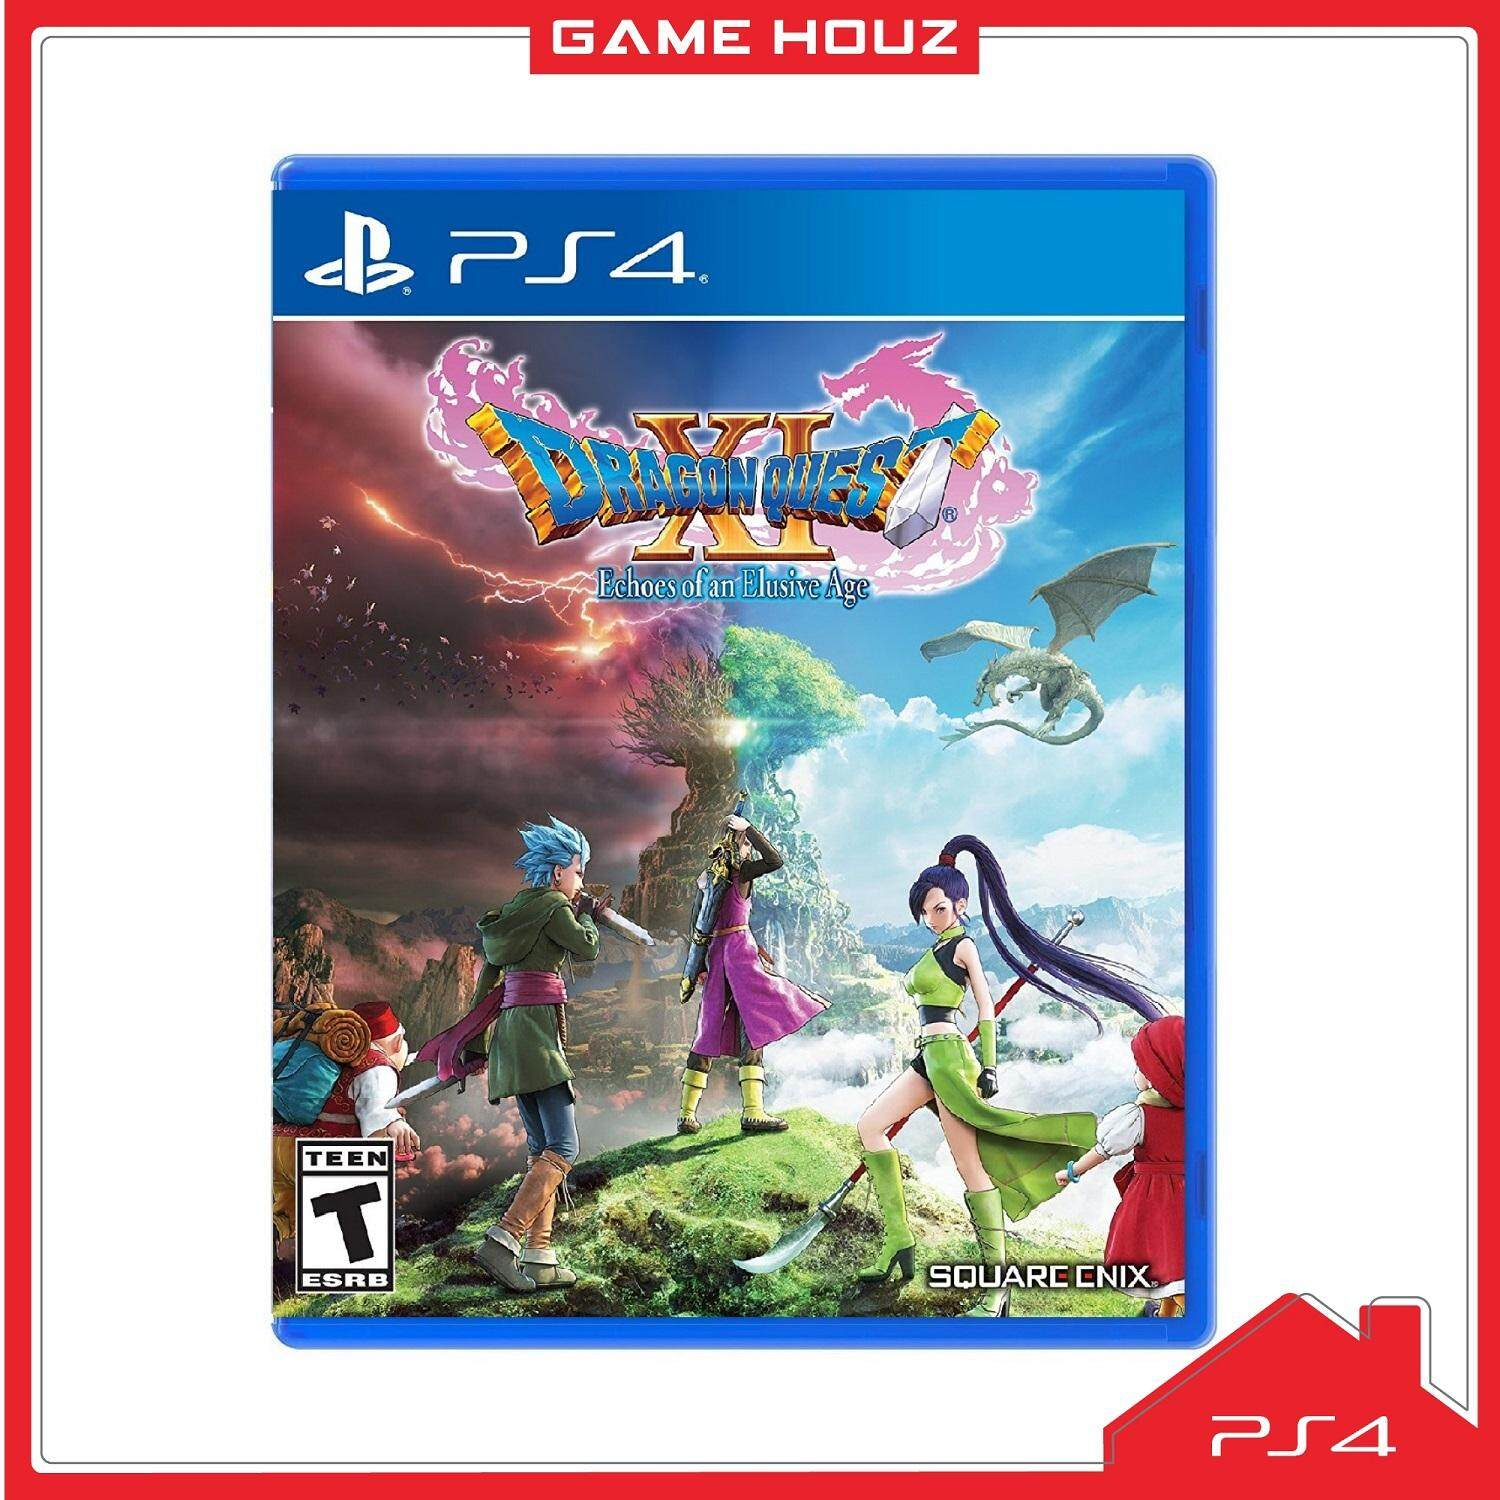 (PS4) Dragon Quest XI: Echoes of an Elusive Age (R3/ENG)